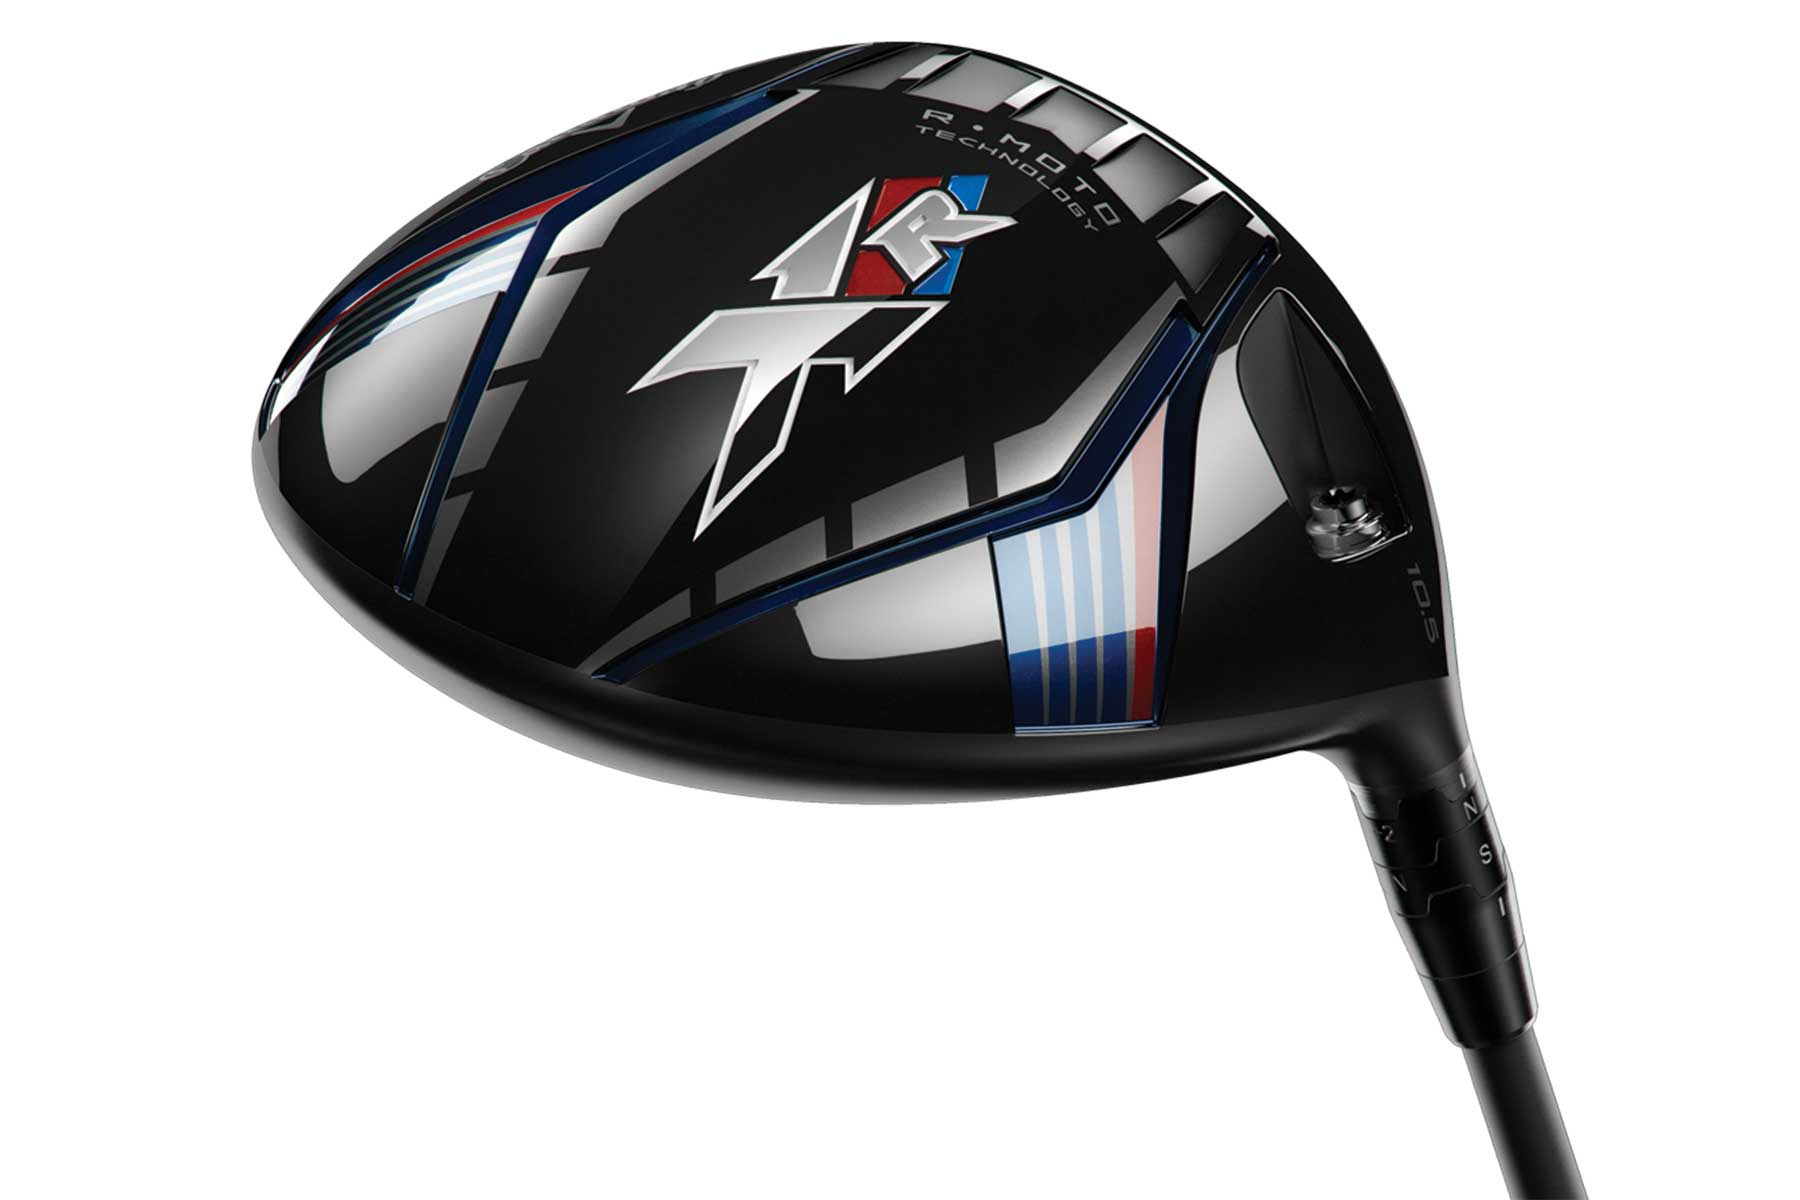 callaway golf xr driver from american golf. Black Bedroom Furniture Sets. Home Design Ideas